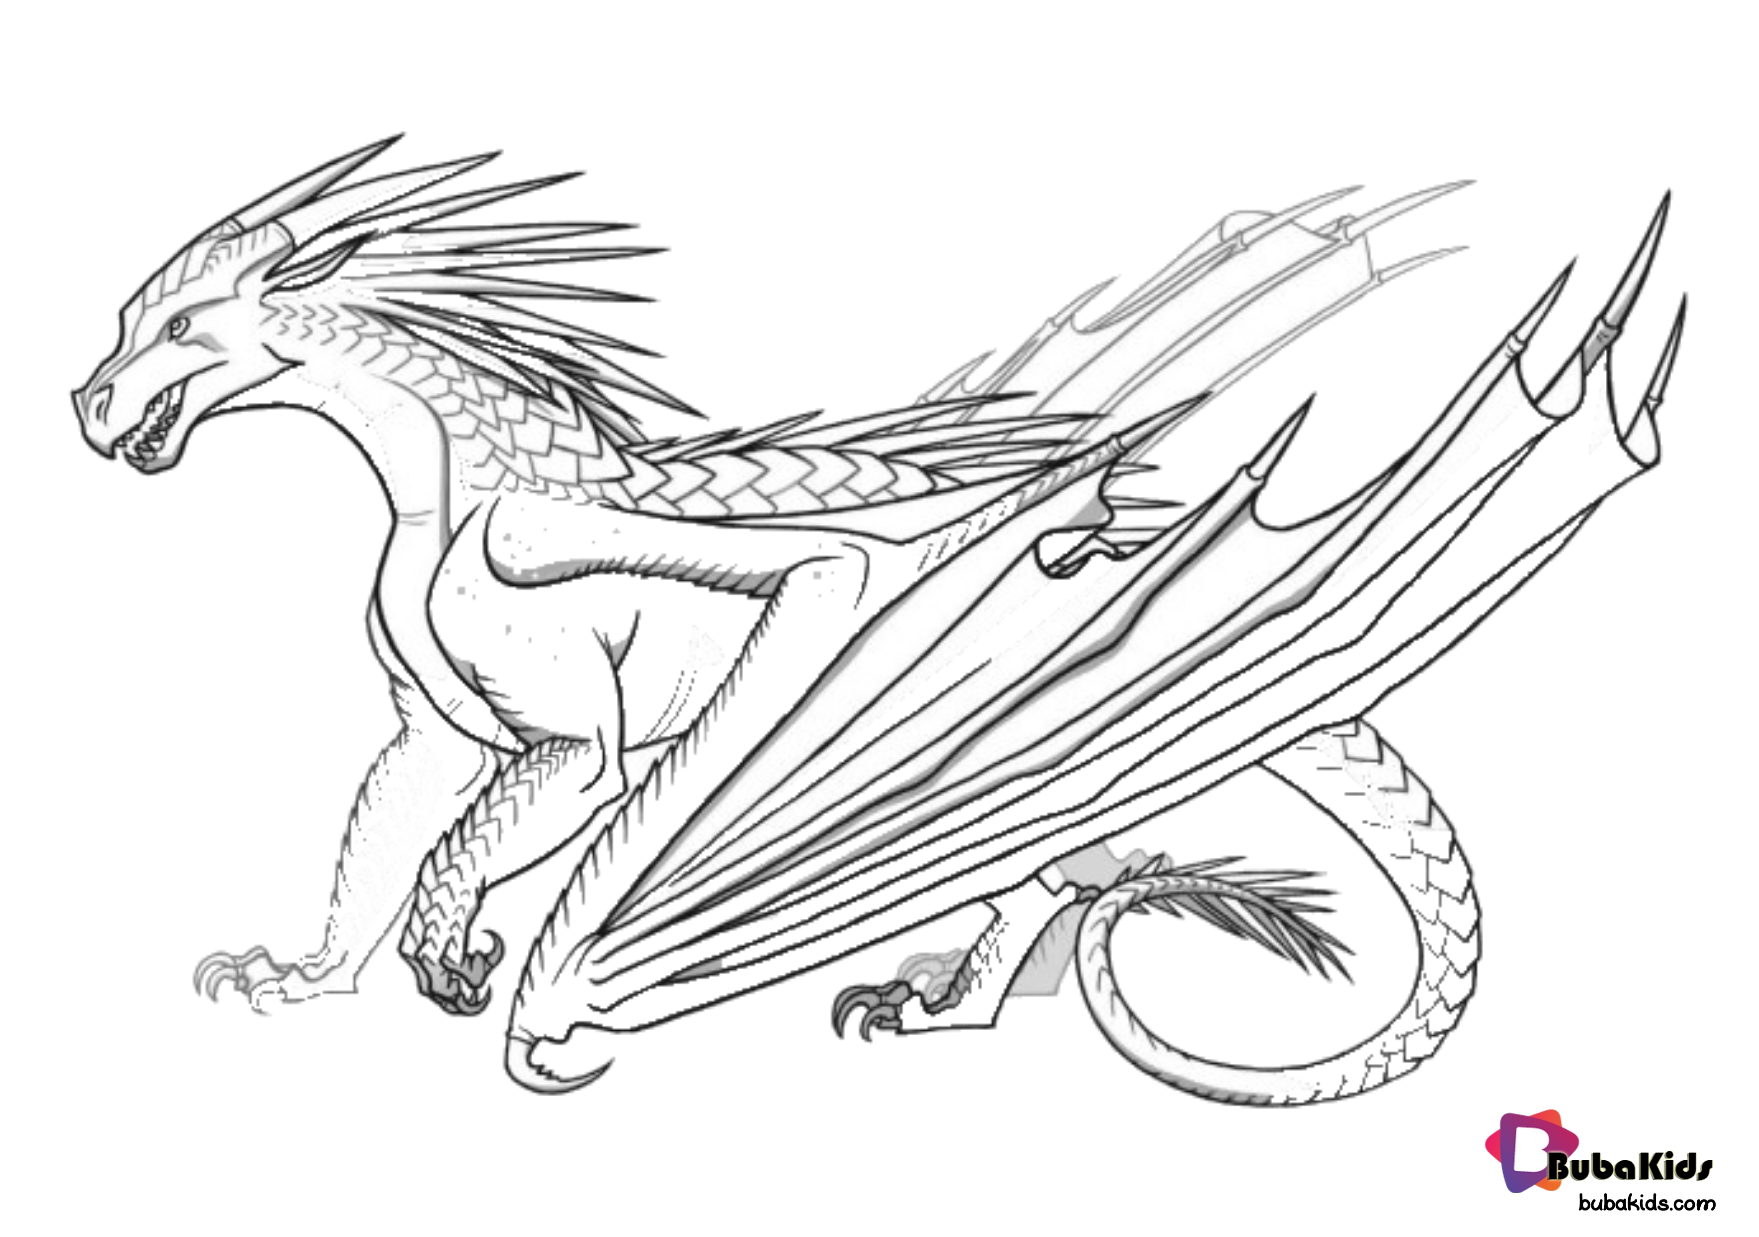 Free Download Dragon Legendary Creatures Coloring Page Collection Of Cartoon Coloring Pages For Teenage Printa In 2020 Wings Of Fire Wings Of Fire Dragons Fire Dragon